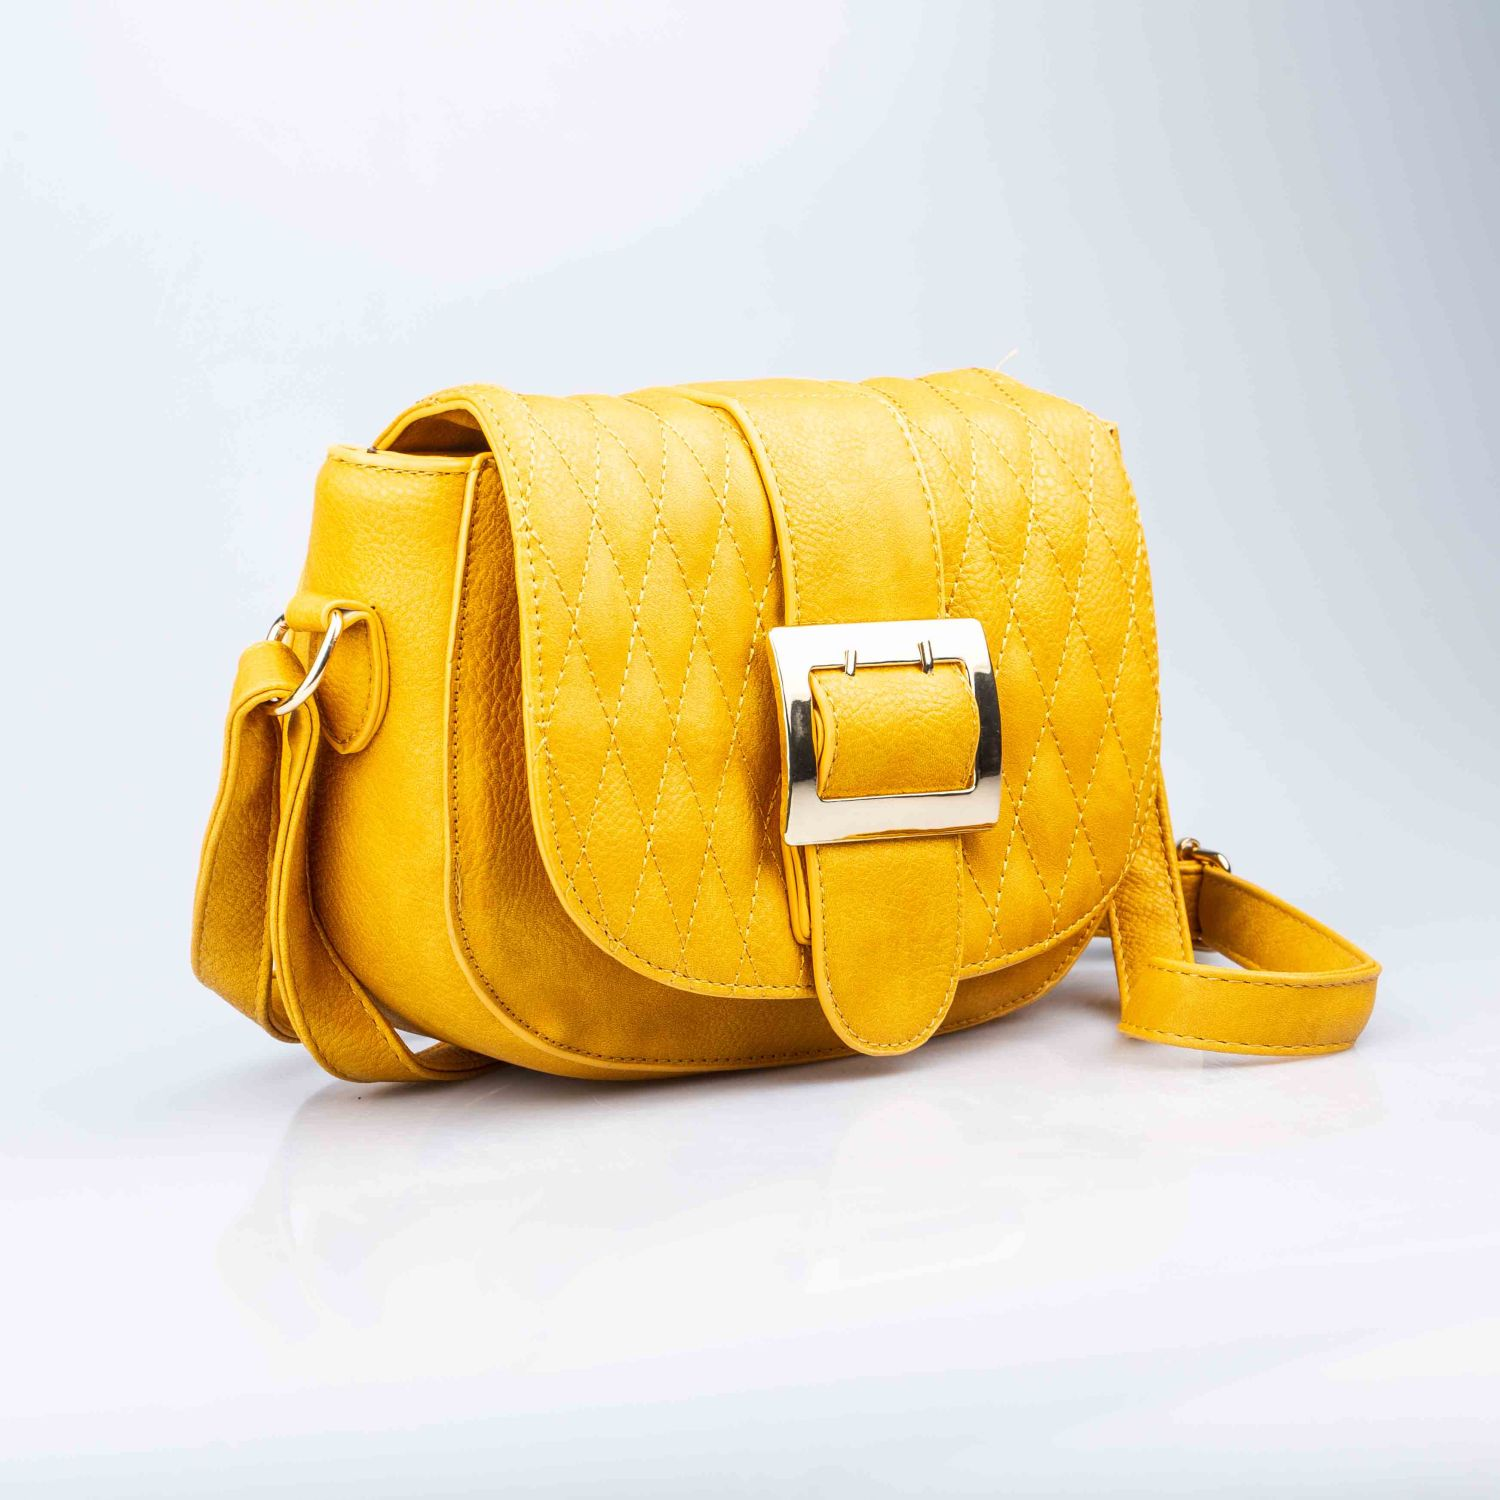 BE SIFRAH Cartera Lady Amarillo Carteras con asa